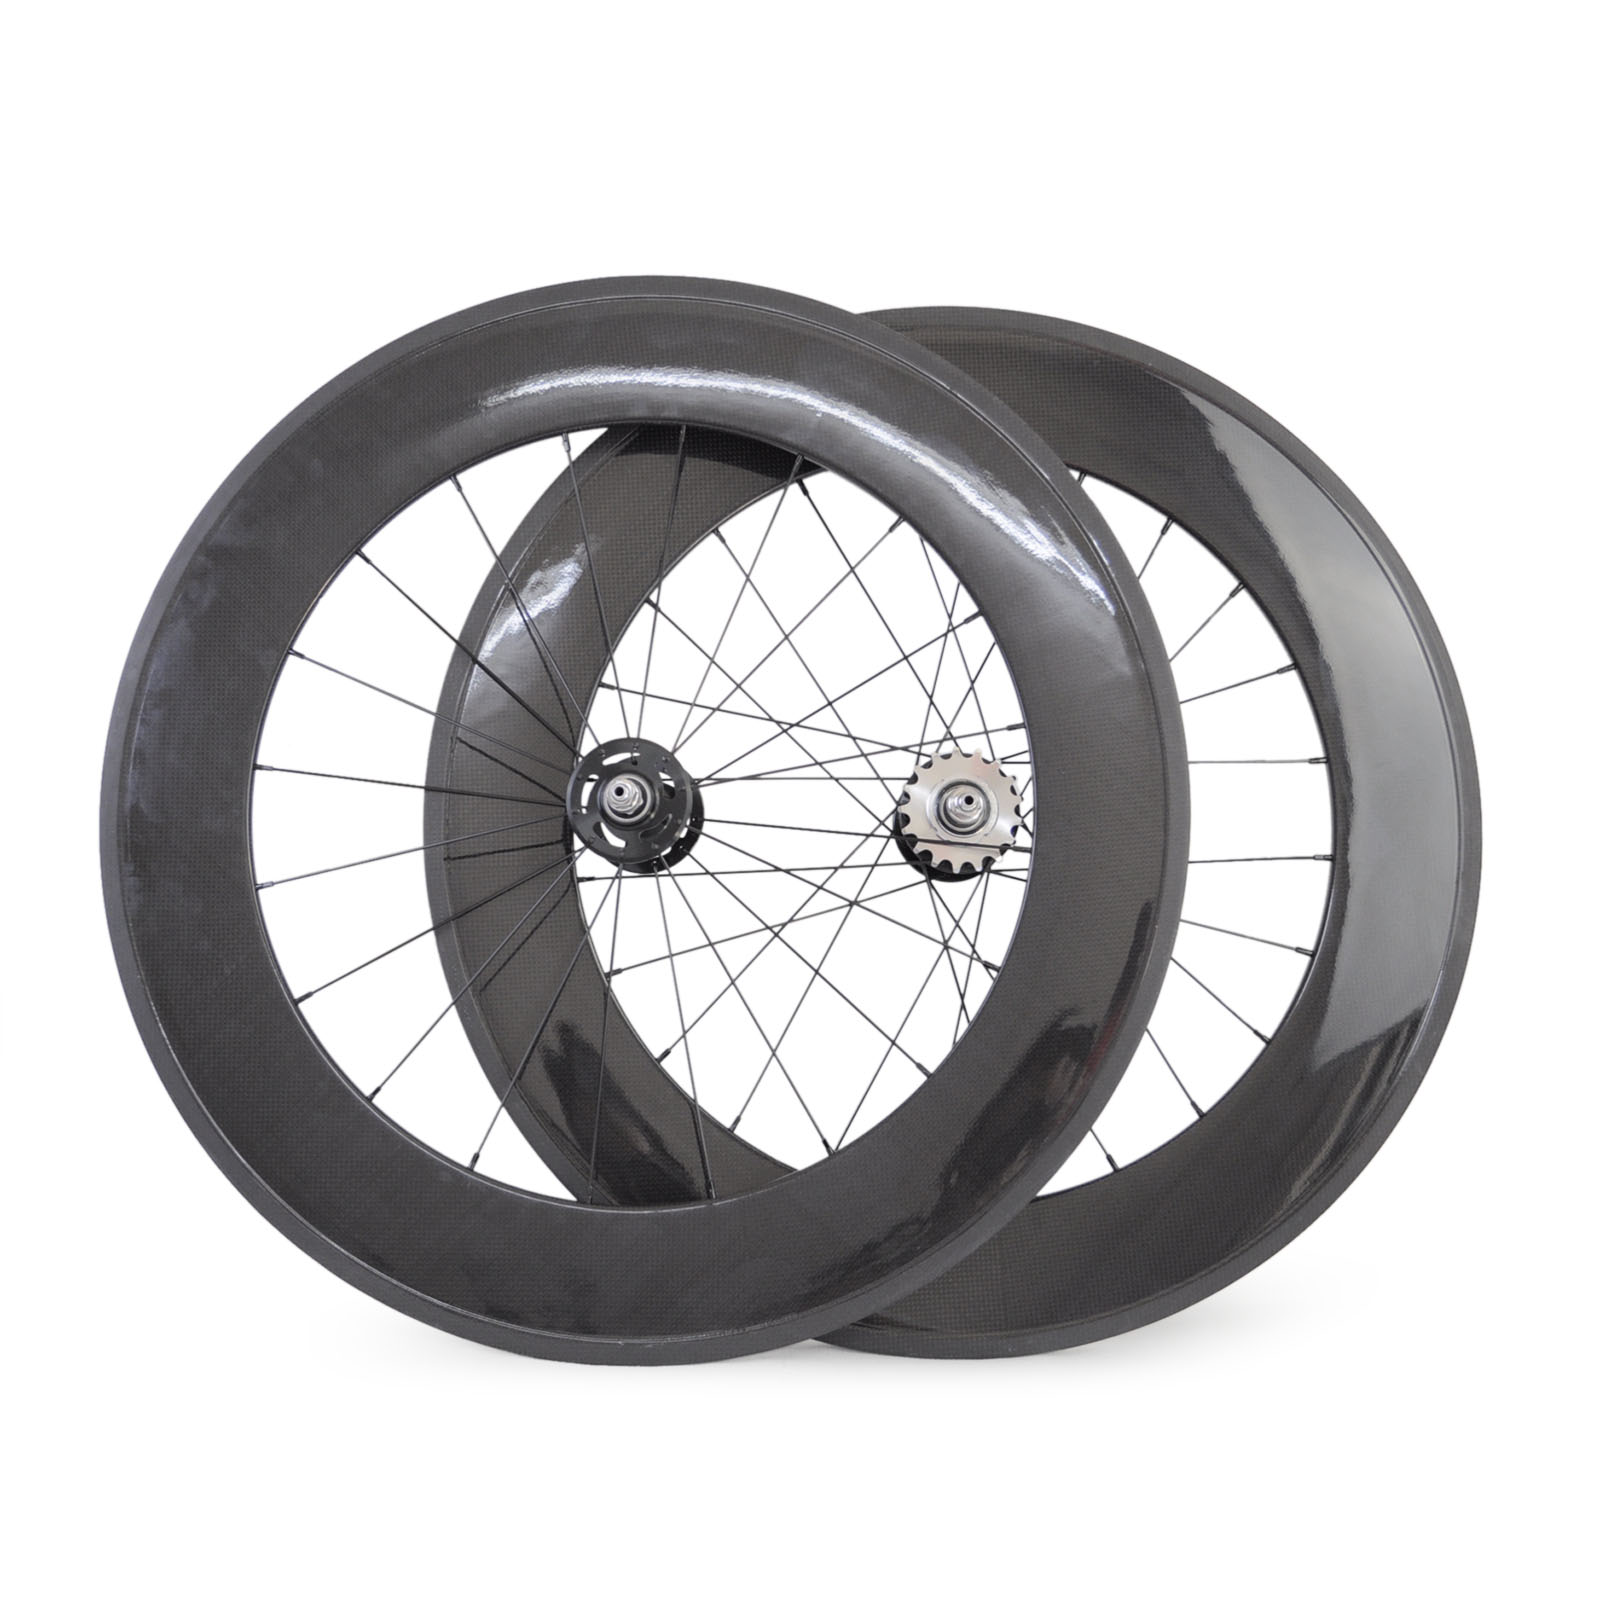 Track Bike Wheels 88mm Carbon Fiber Tubular Fixed Gear Bike Wheels 700C 23mm Width Bicycle Wheelset kempinski wall switch 3 gang 1 way light switch champagne gold color special texture c31 sereis 110 250v popular